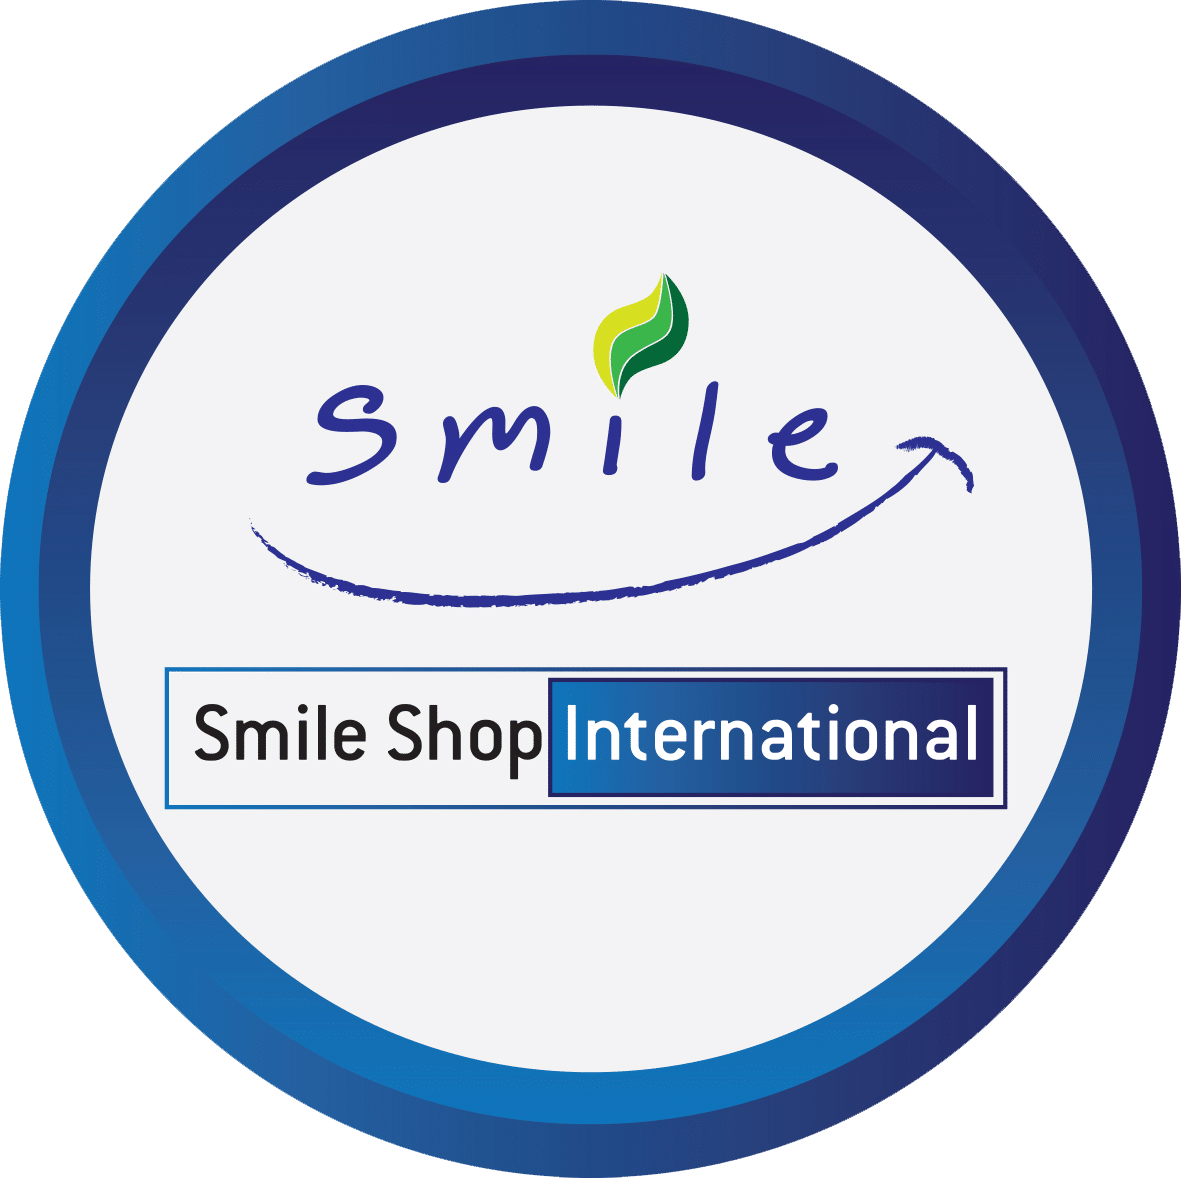 Smile Shop International